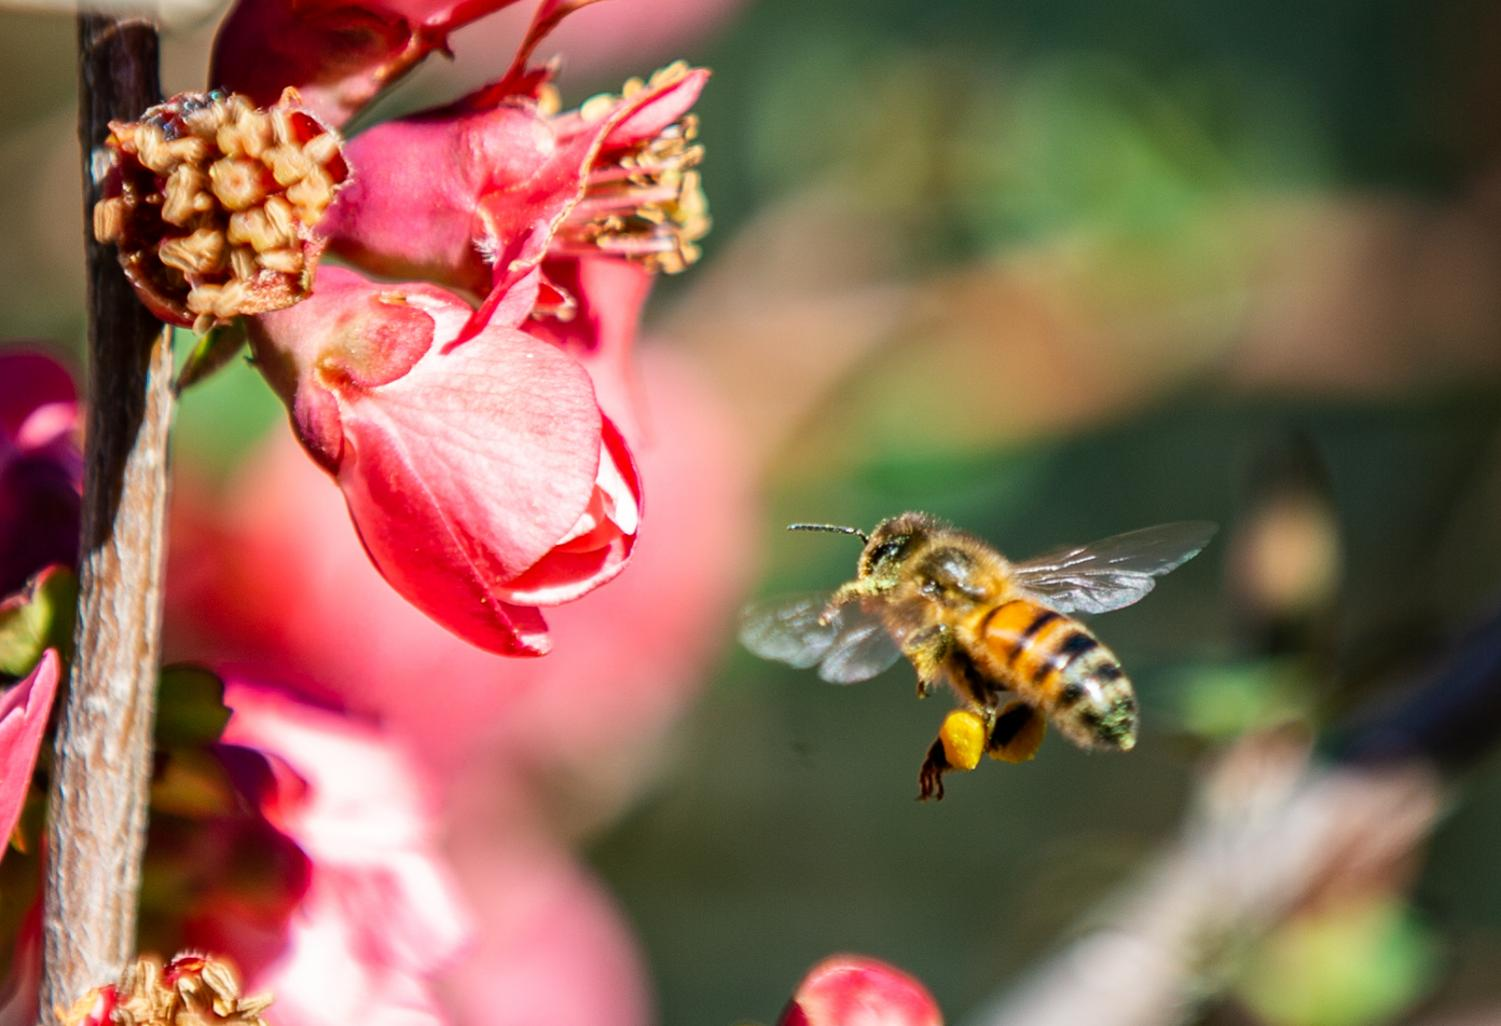 A honey bee gathers pollen from japonica flowers near Lake George NSW. Photo credit: AJ Macpherson.